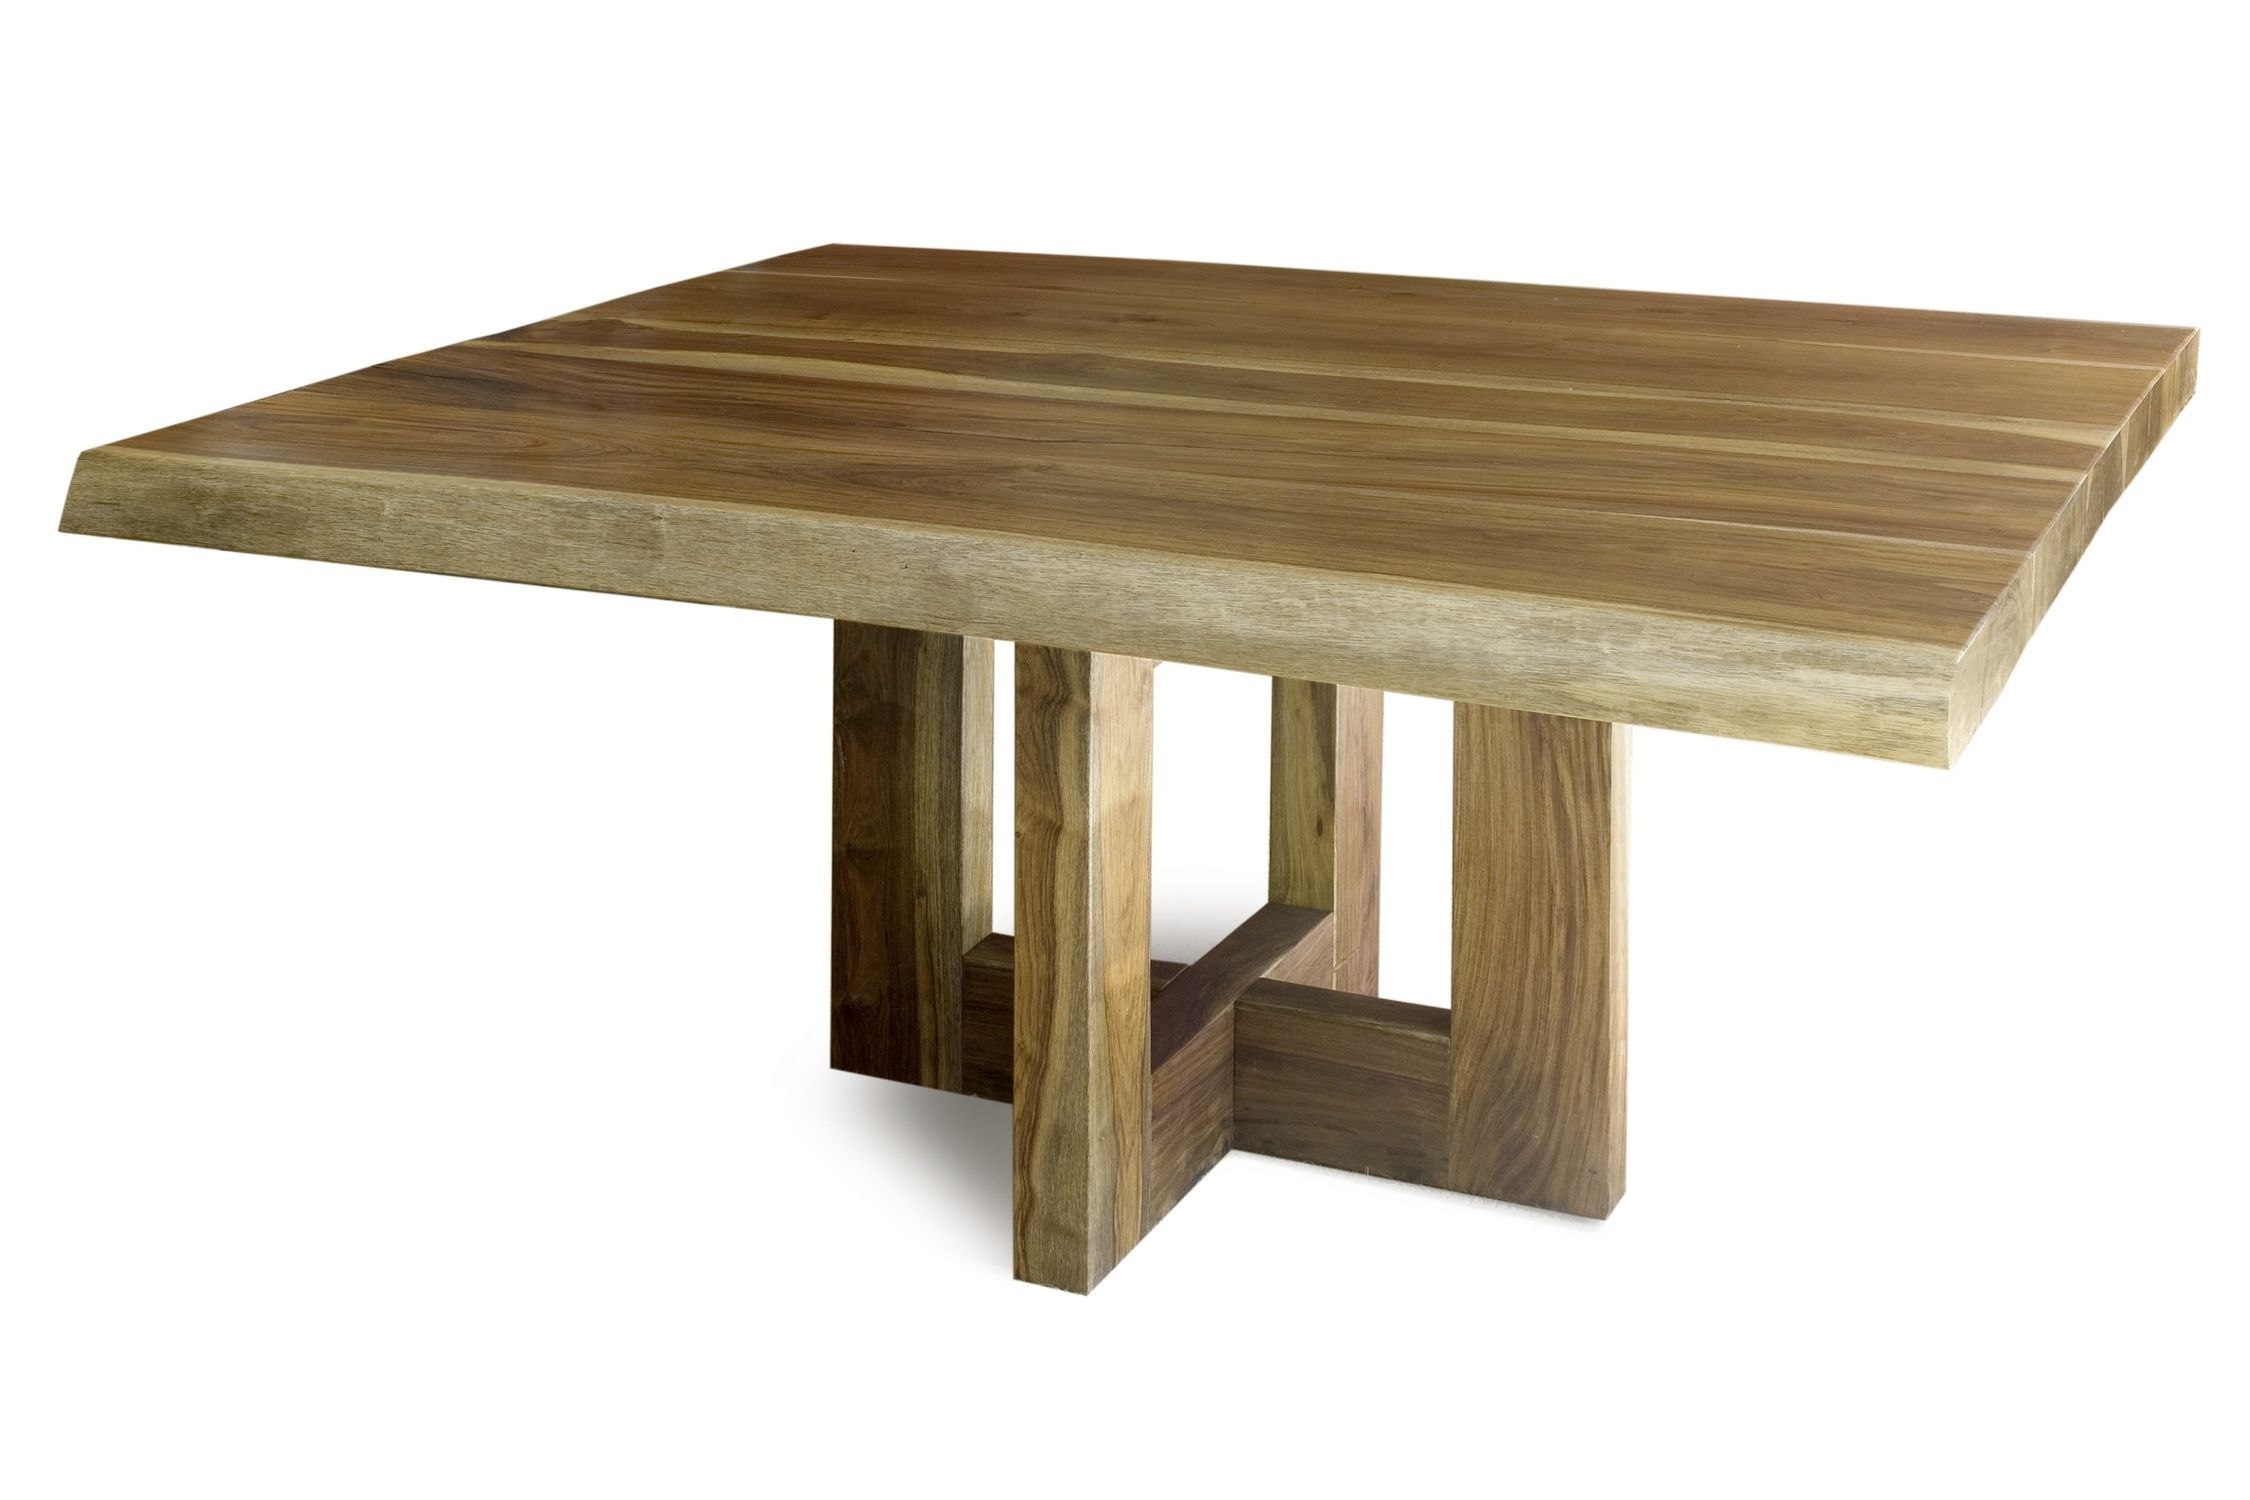 wood coffee table contemporary photo - 7